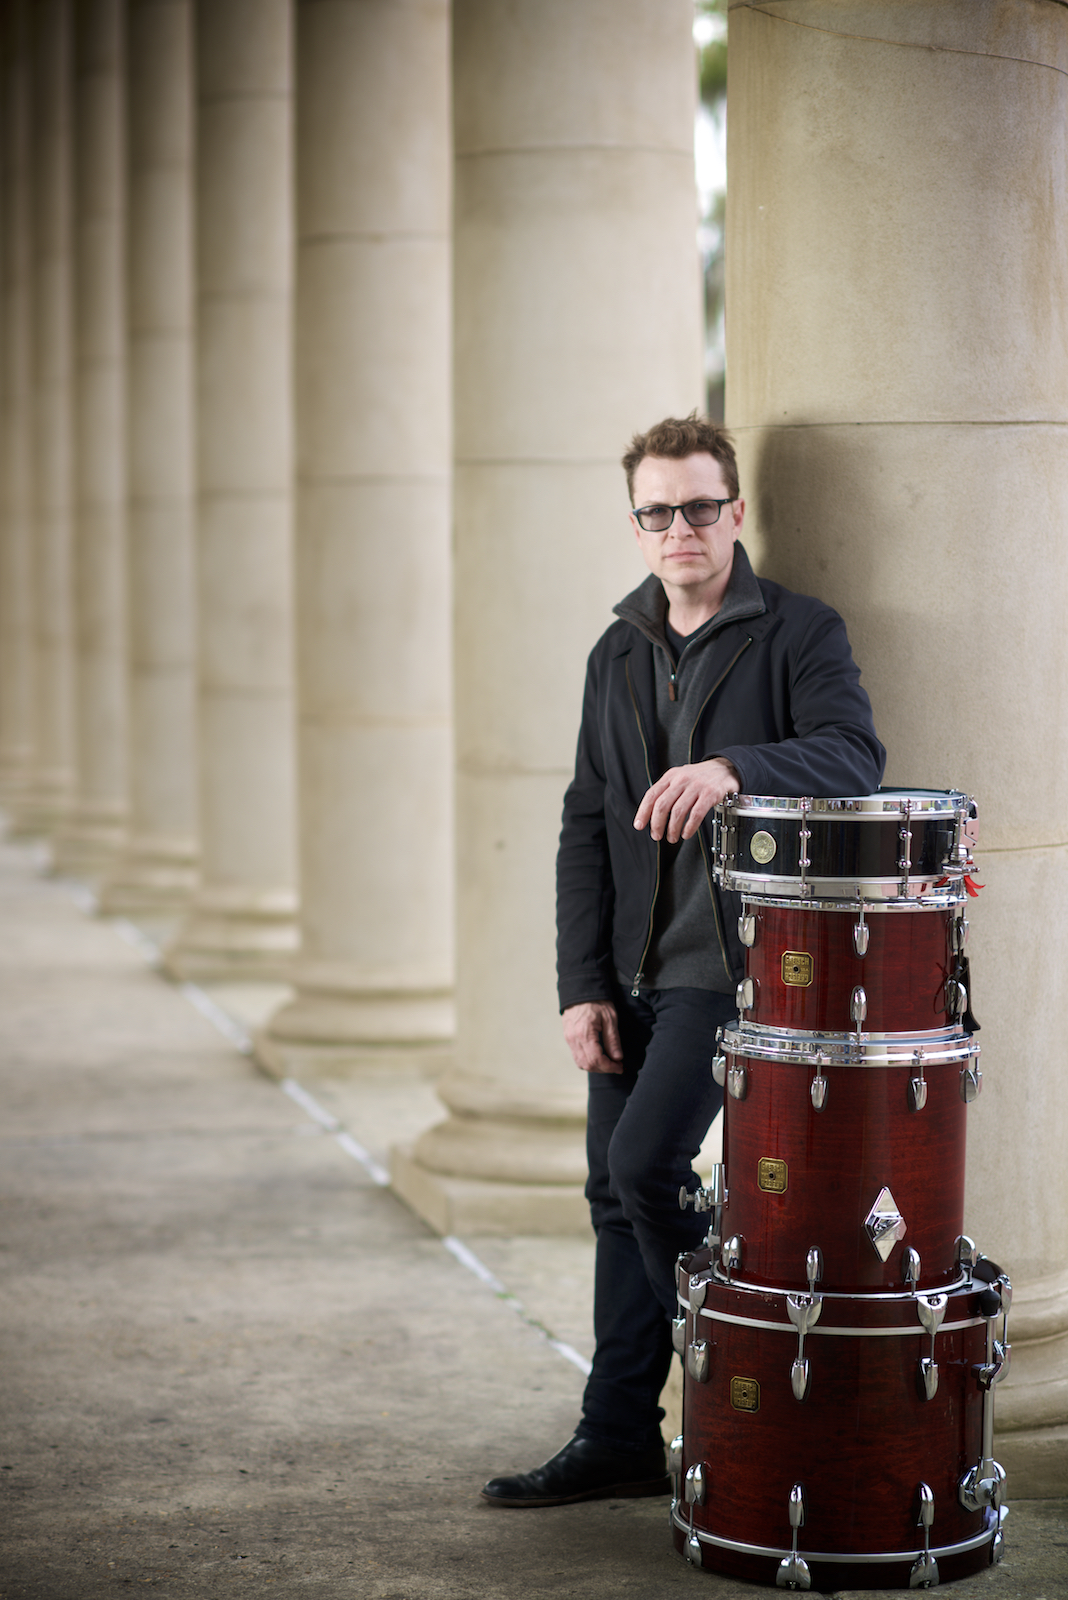 Galactic and Stanton Moore Trio drummer Stanton Moore, along with his Gretsch drumset, photographed in New Orleans City Park by New Orleans based photographer, Marc Pagani